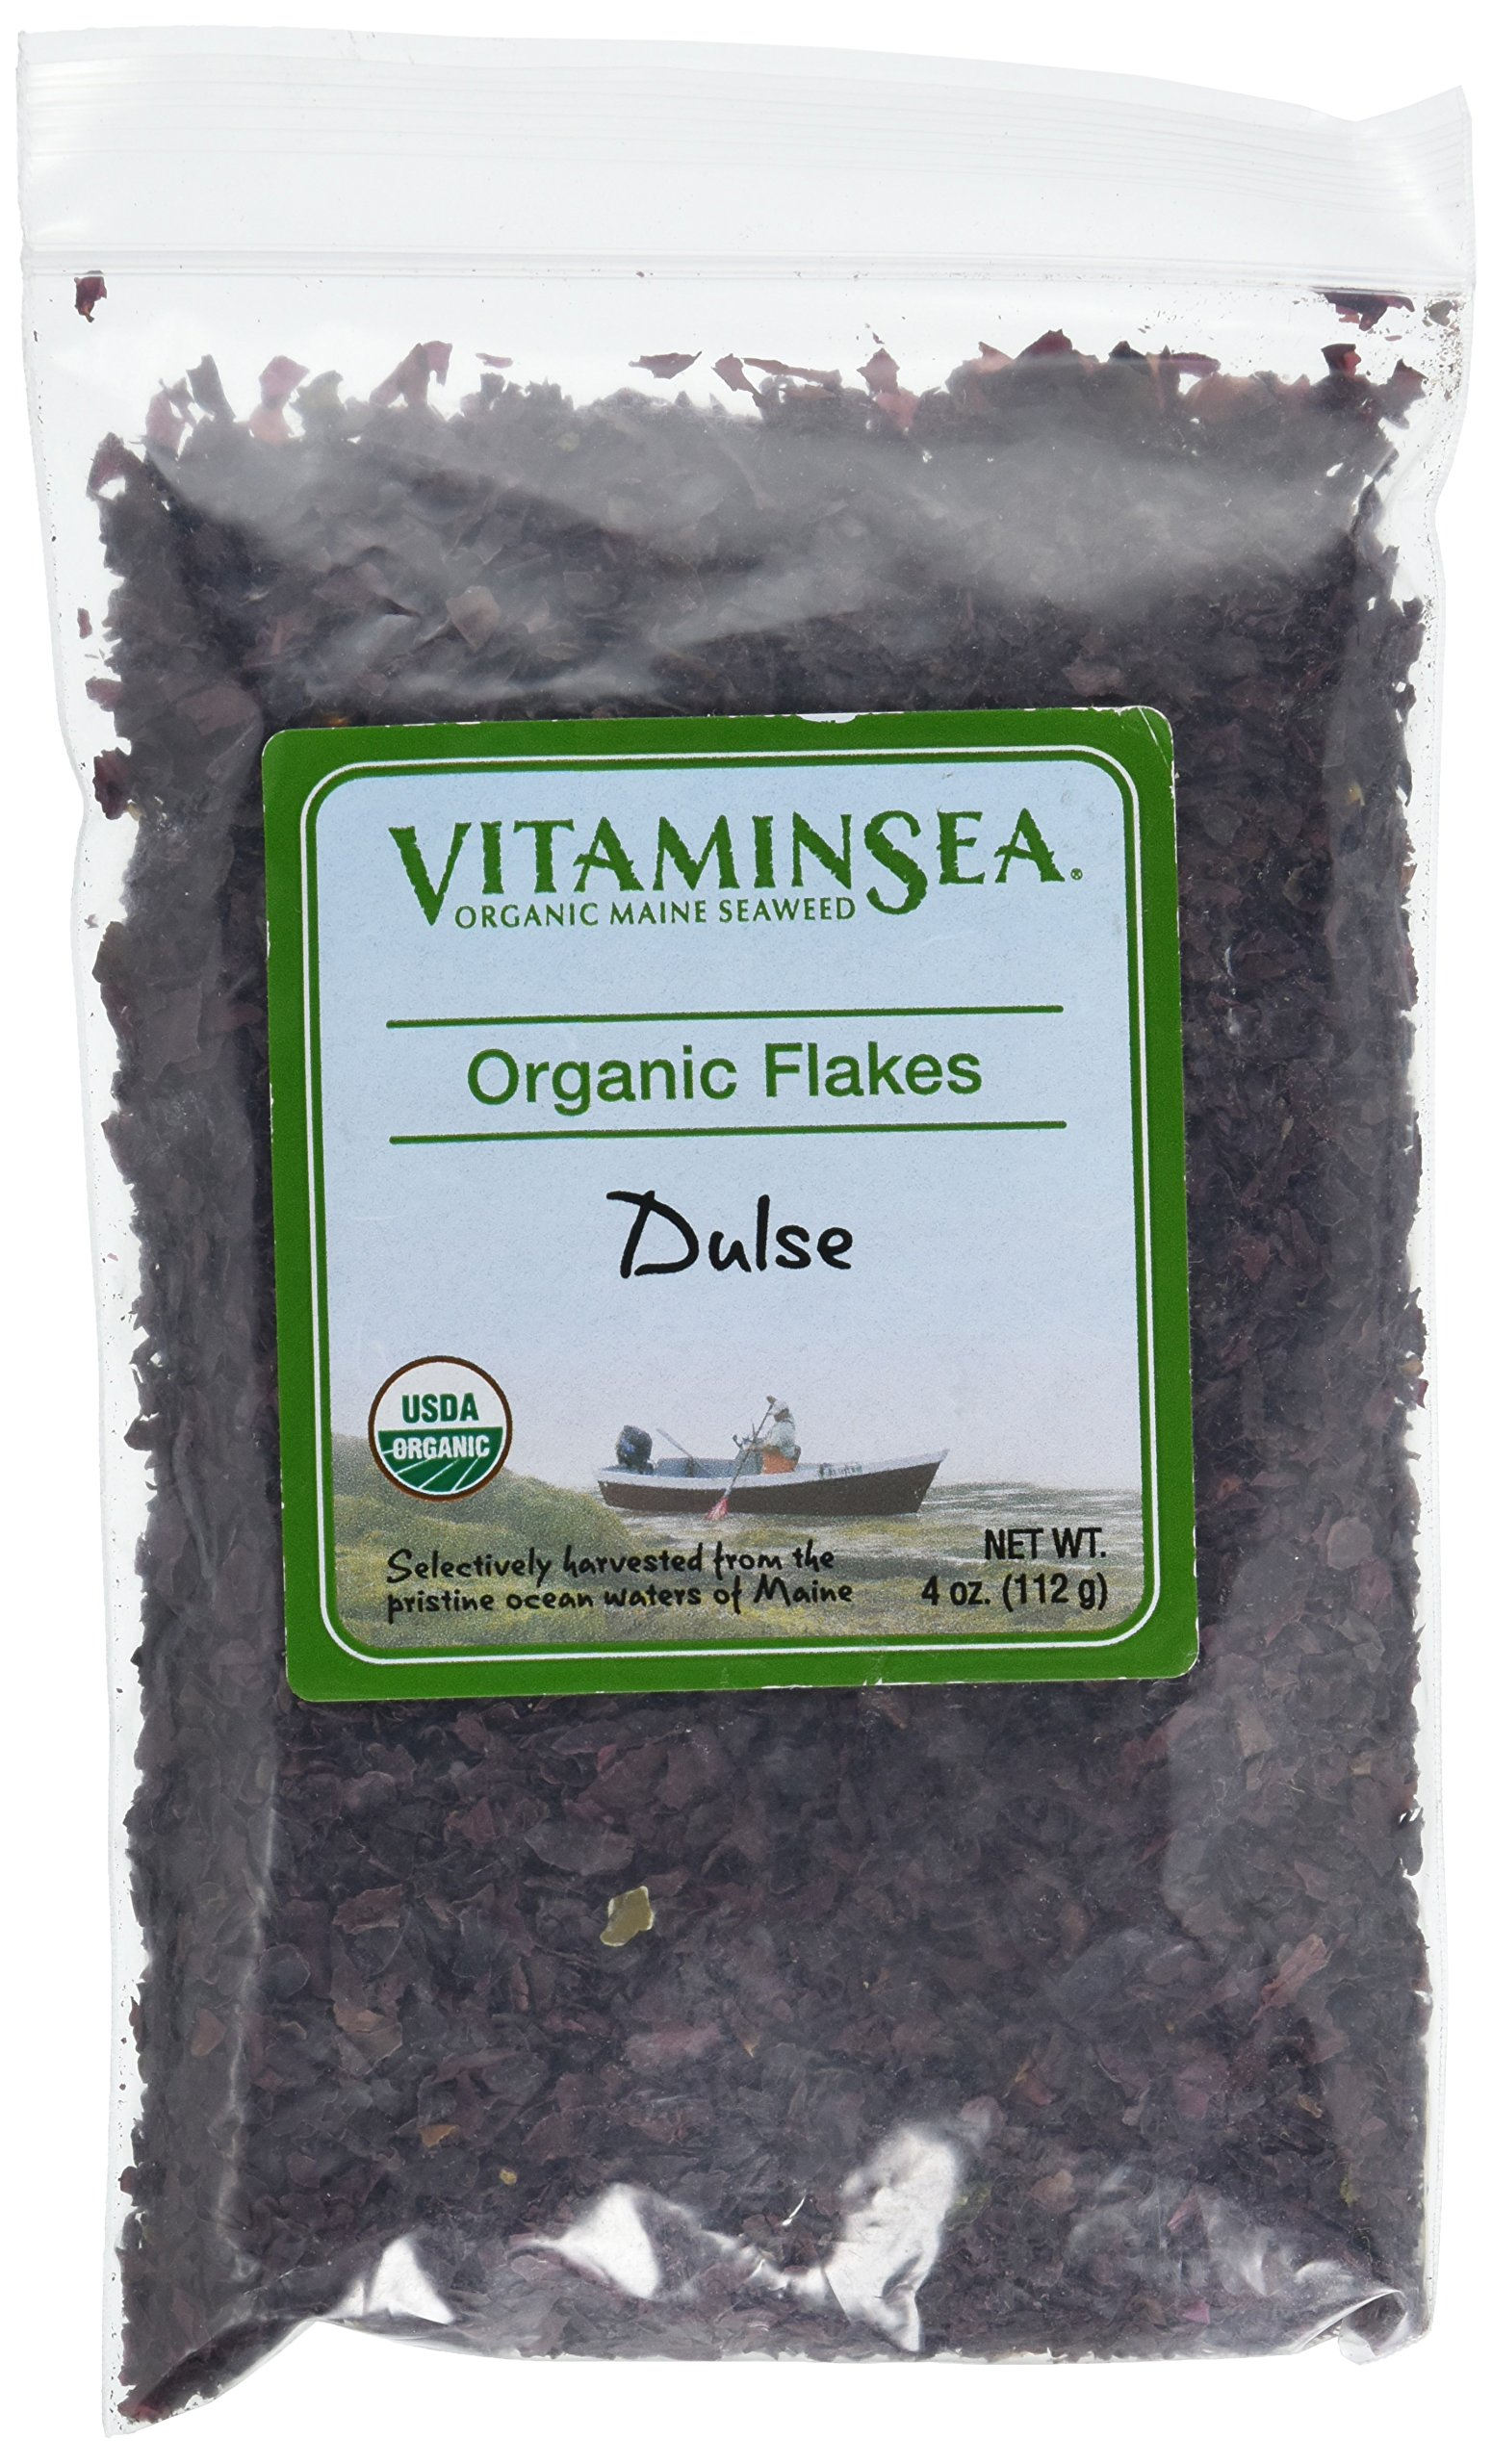 Organic Dulse Flakes Maine Seaweed - 4 oz bag - USDA & Vegan Certified - Kosher - Hand Harvested from the Atlantic Ocean Coast - Sun Dried Raw and Wild Sea Vegetables VitaminSea (Dulsd flks 4 oz)